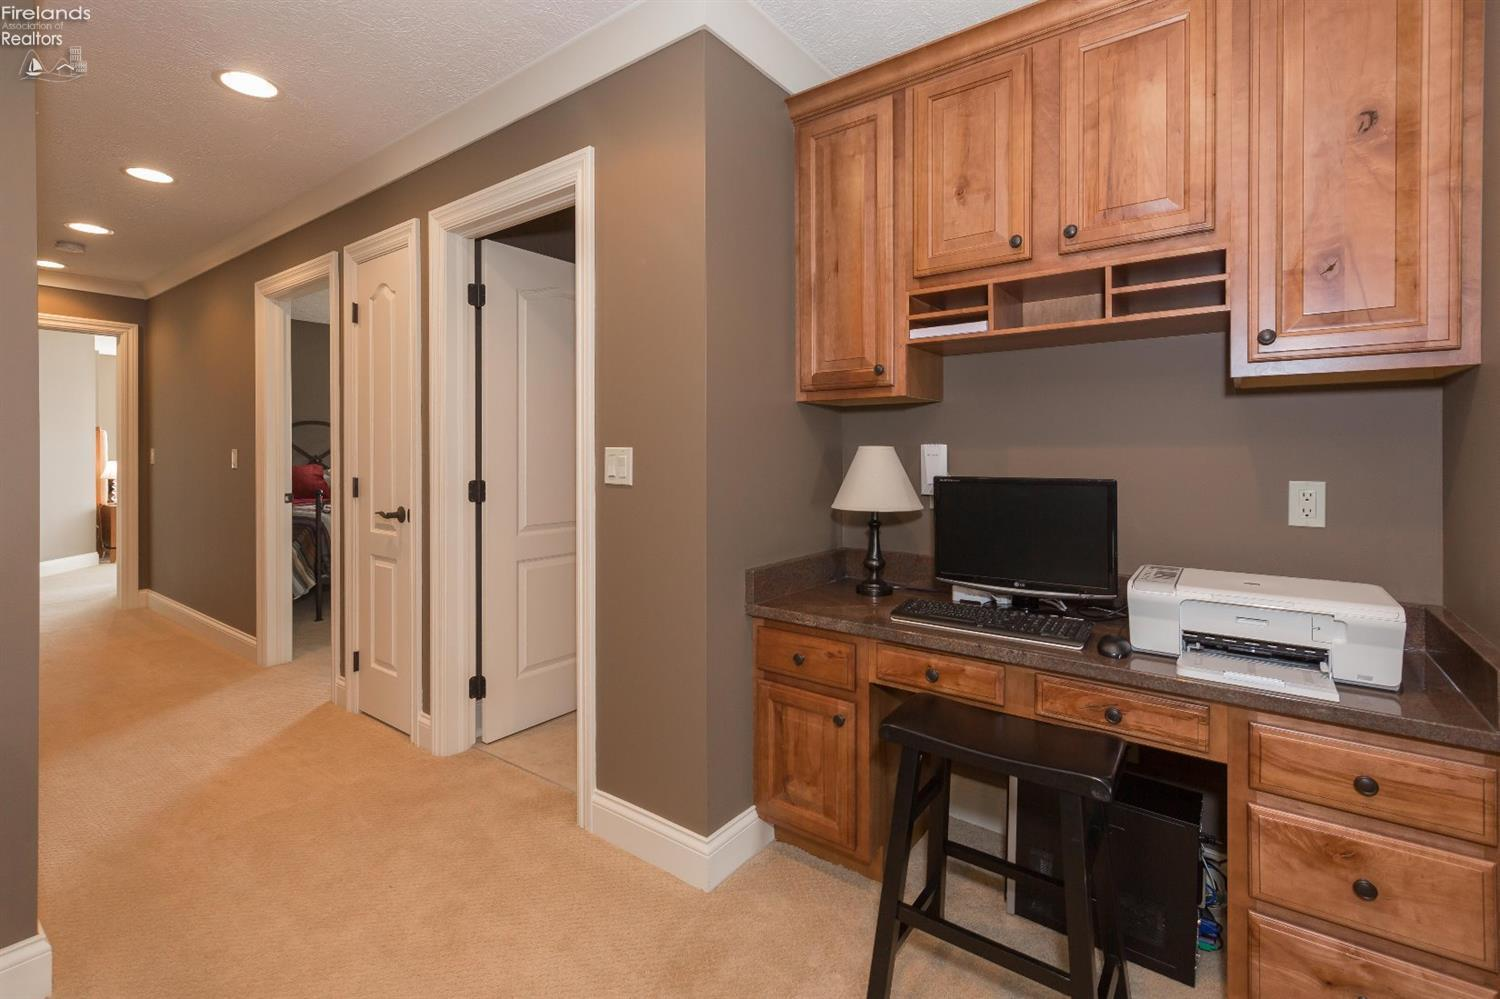 6920 E SUNVIEW #18, MARBLEHEAD, OH 43440  Photo 8